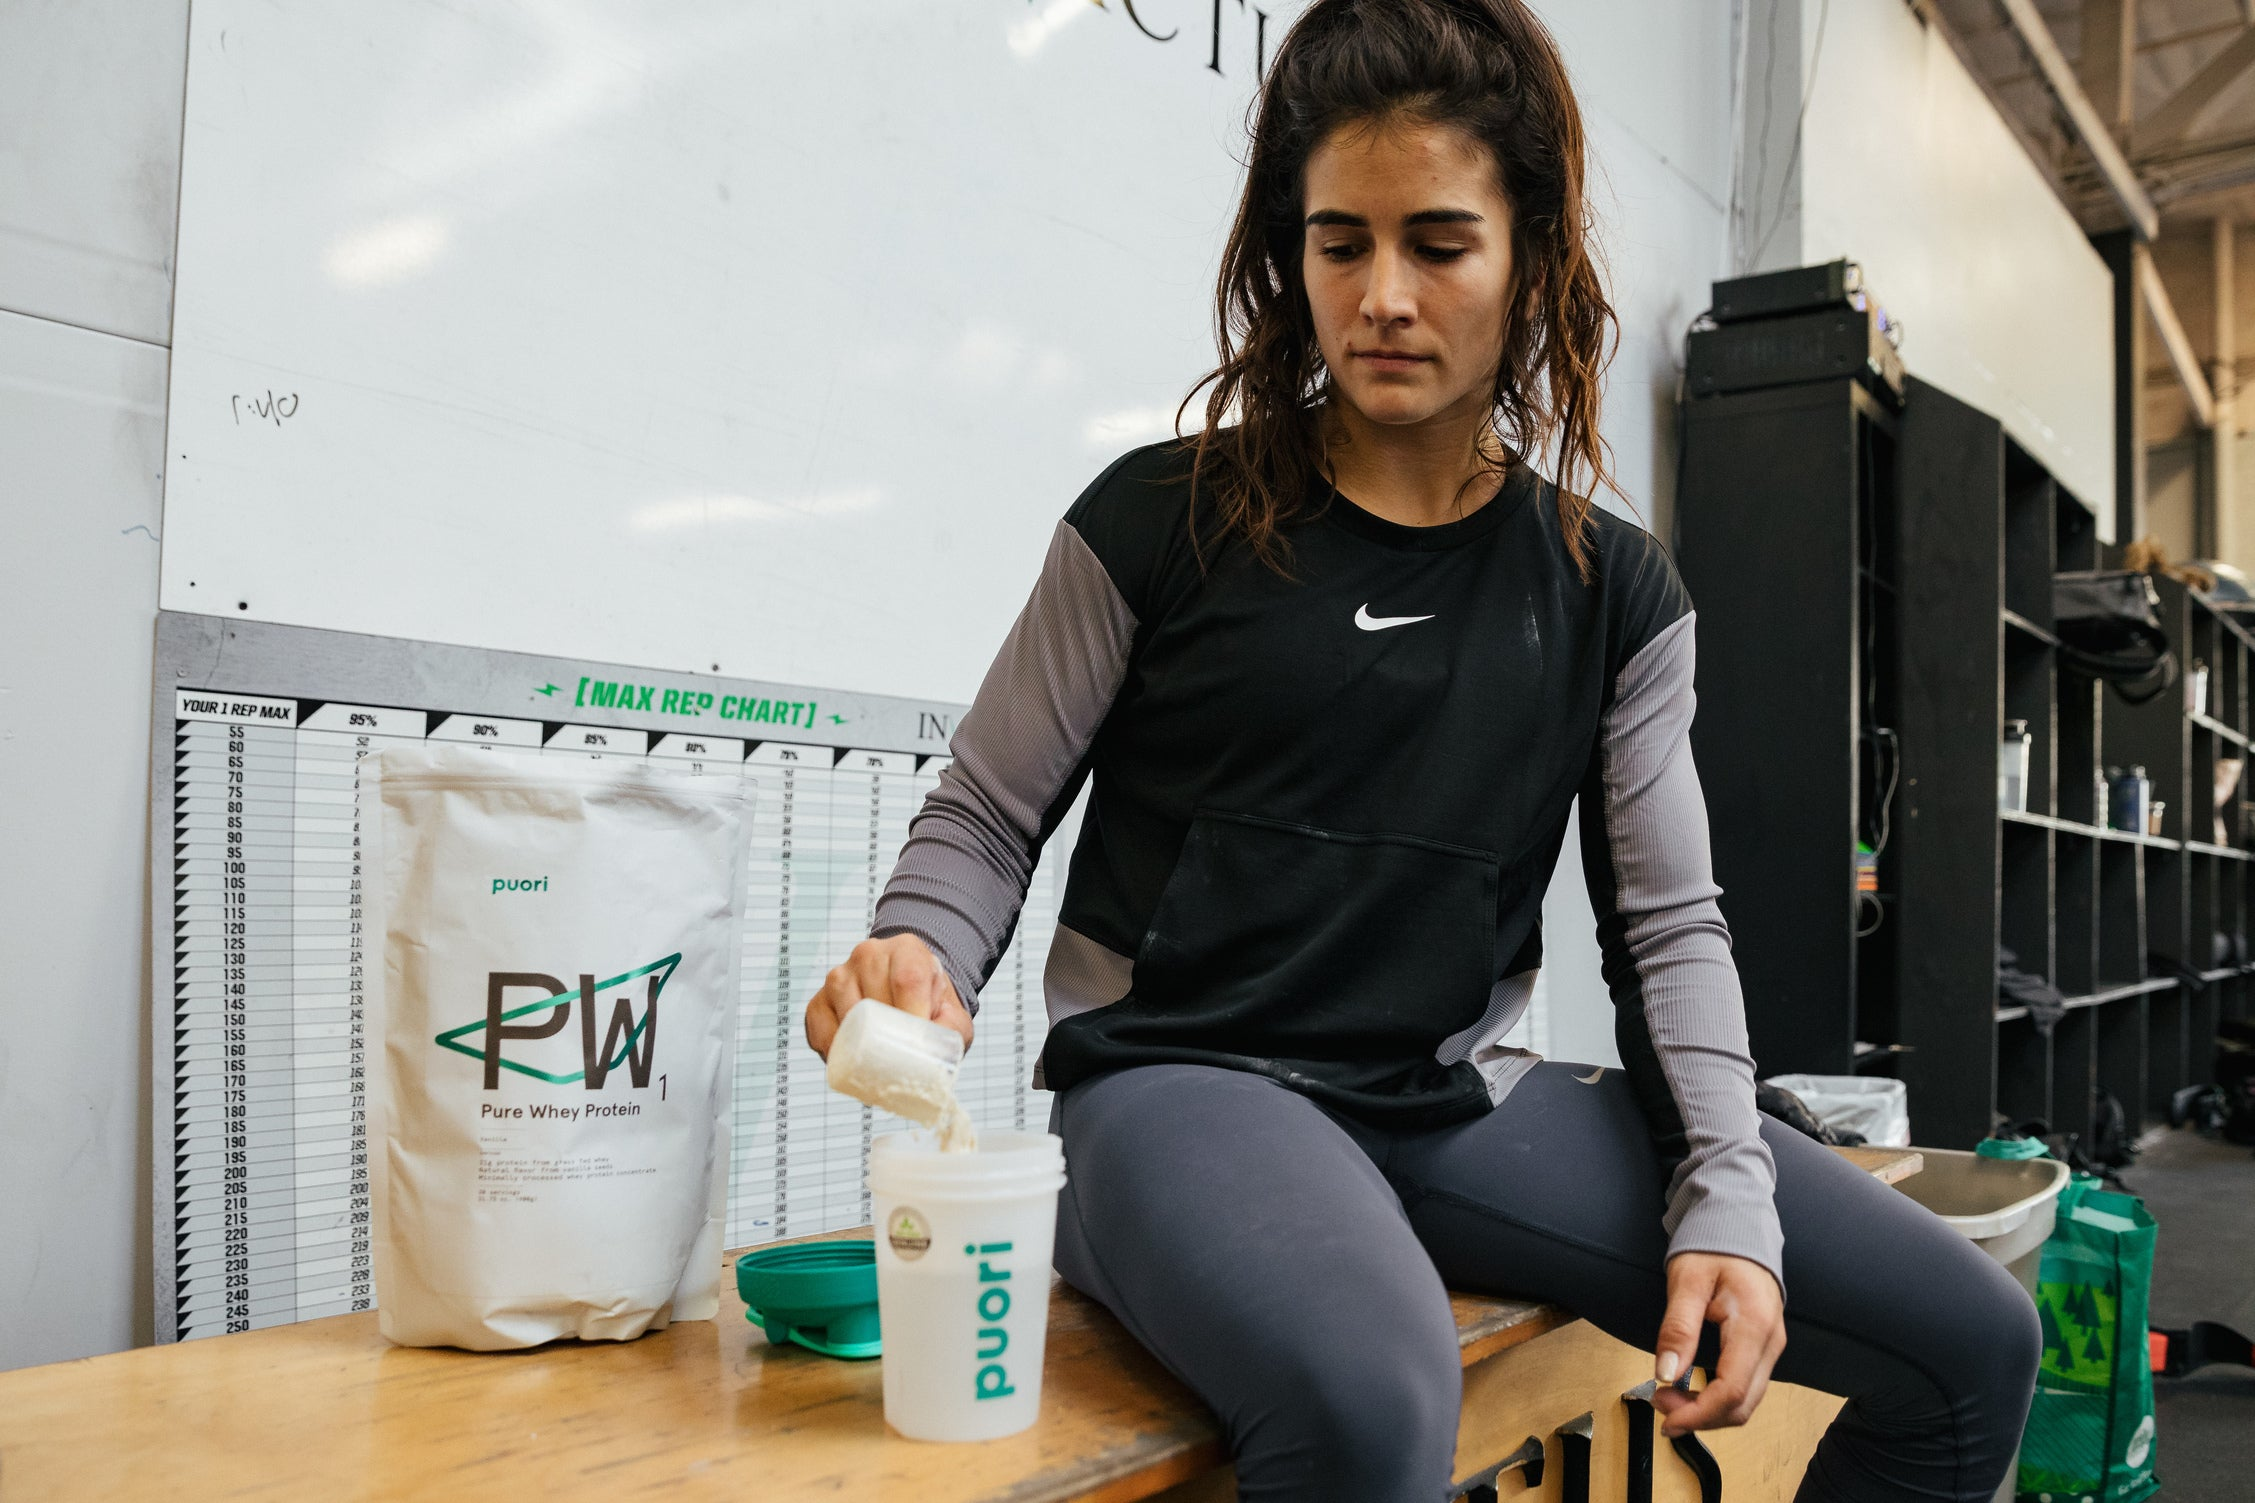 Lauren Fisher with Puori PW1 Vanilla